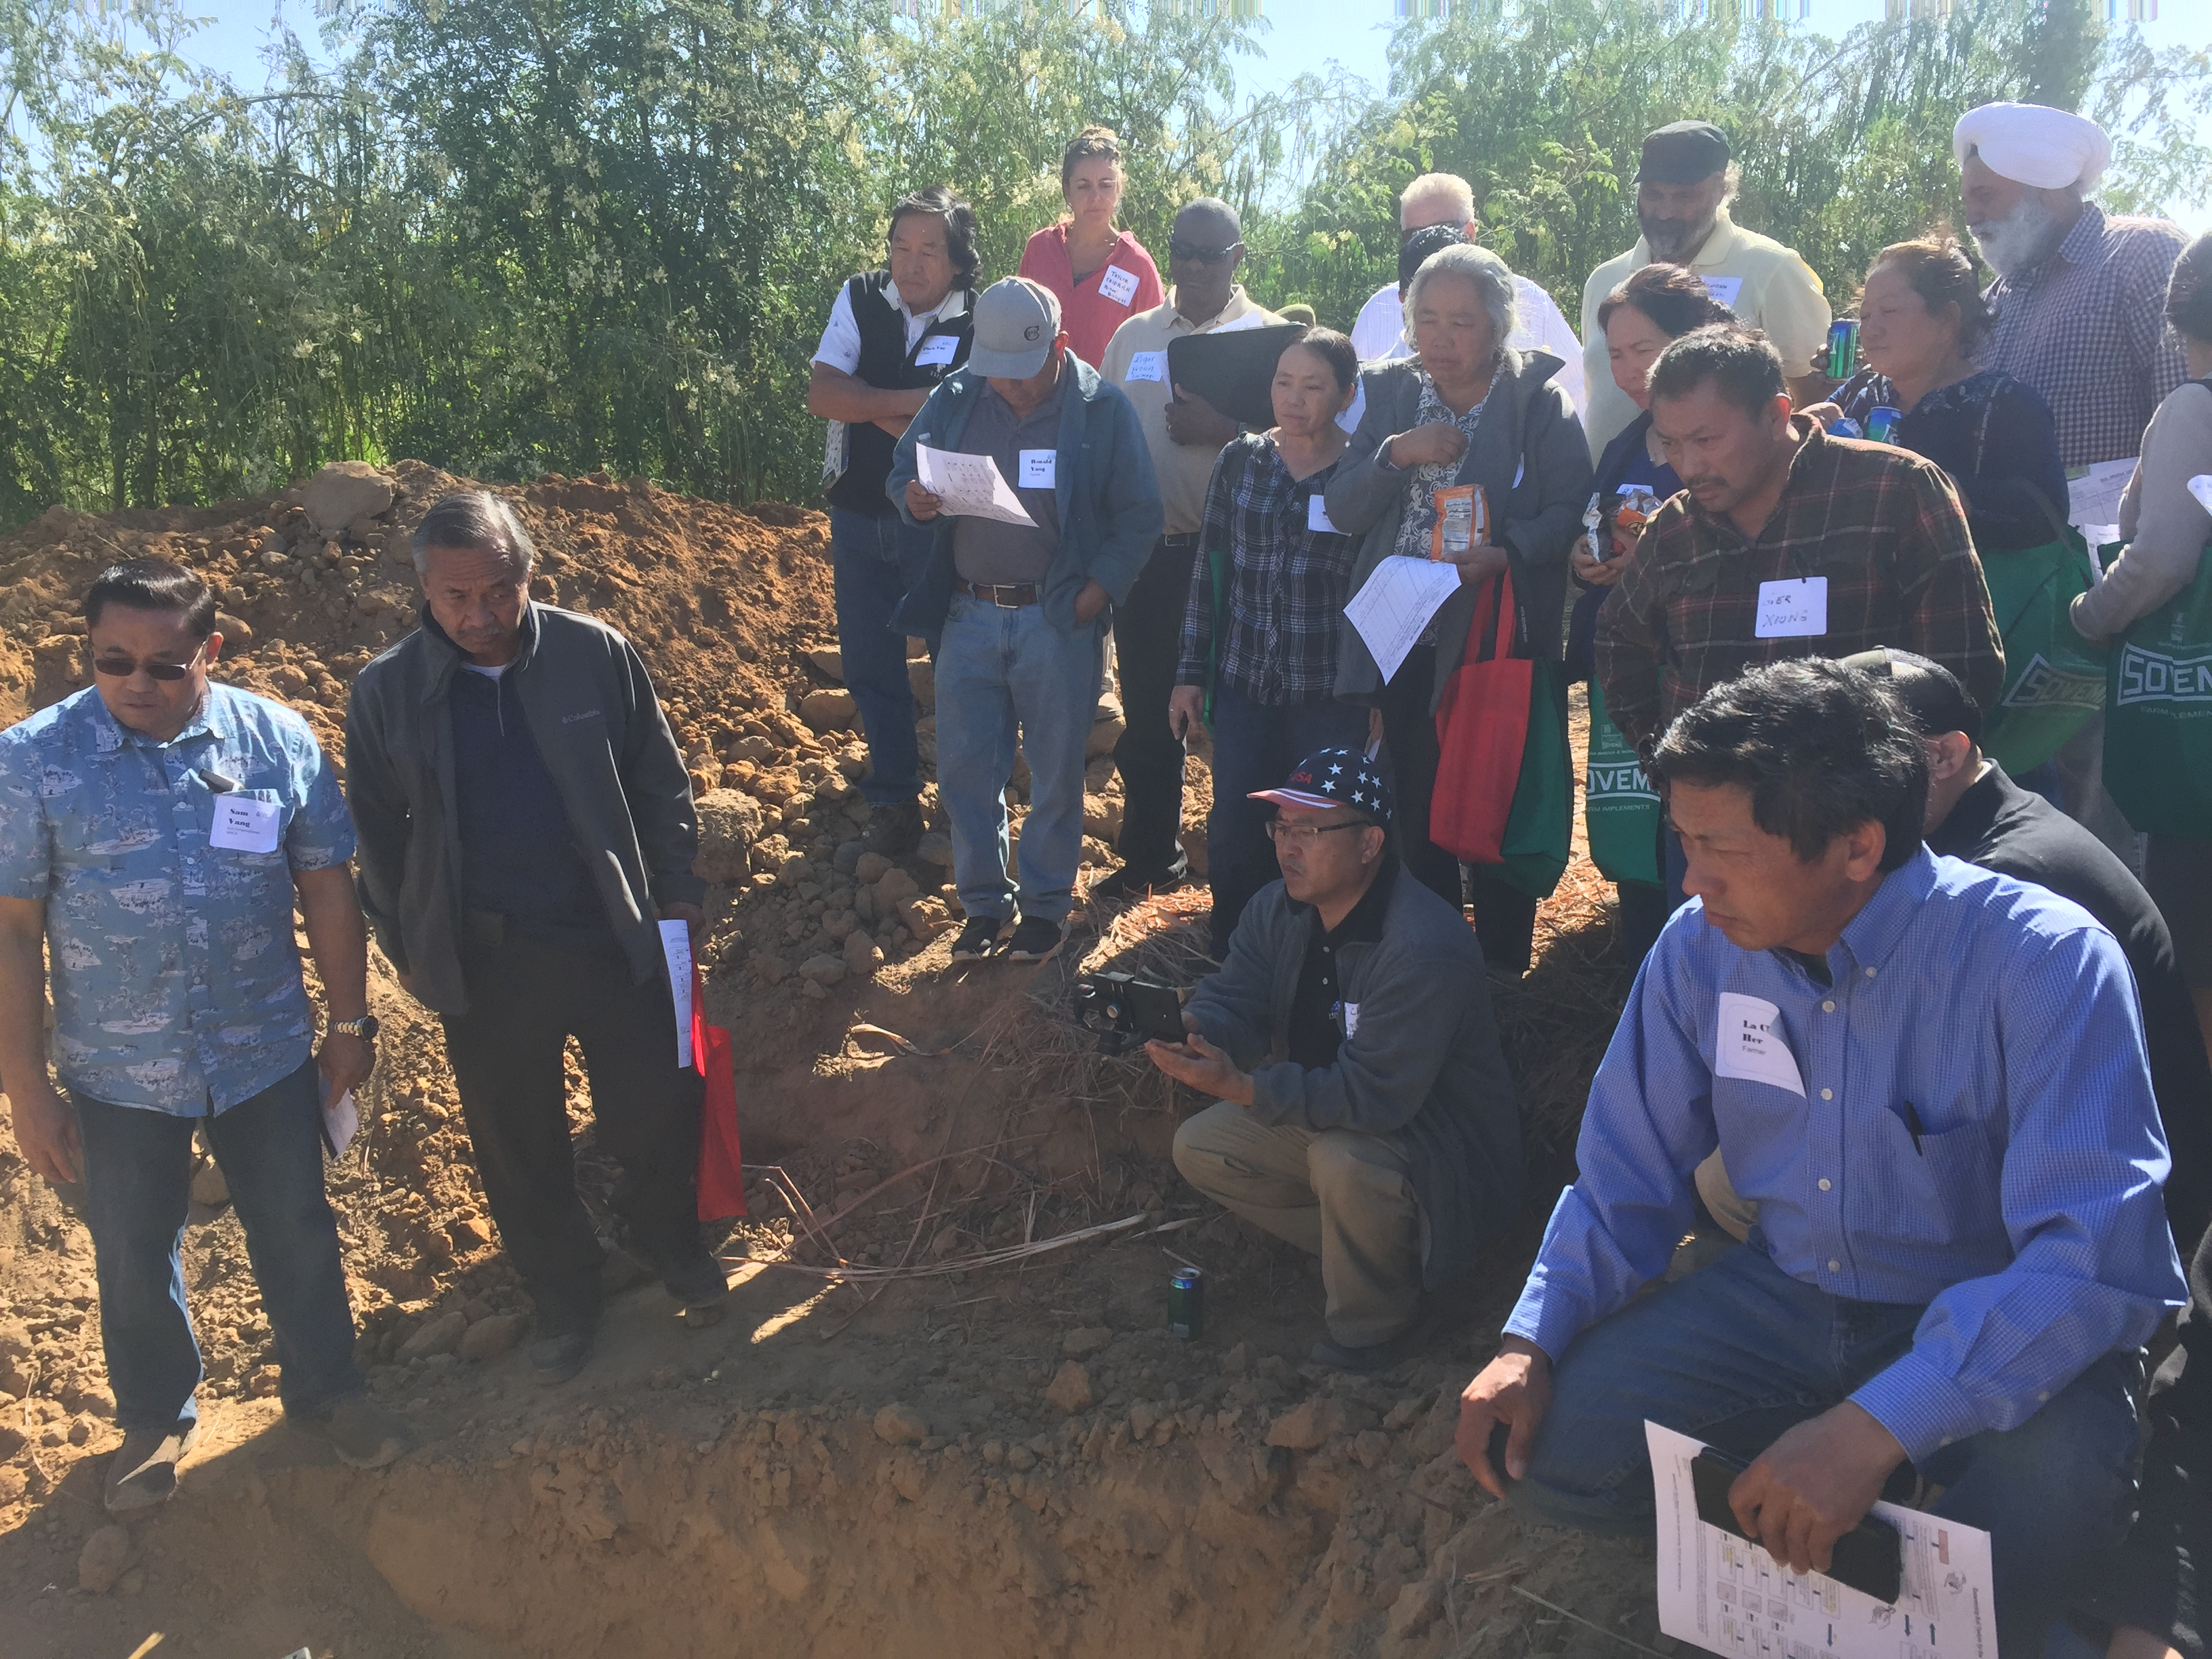 Soil pit demonstration in NRCS led workshop in Fresno County with many participants watching on.